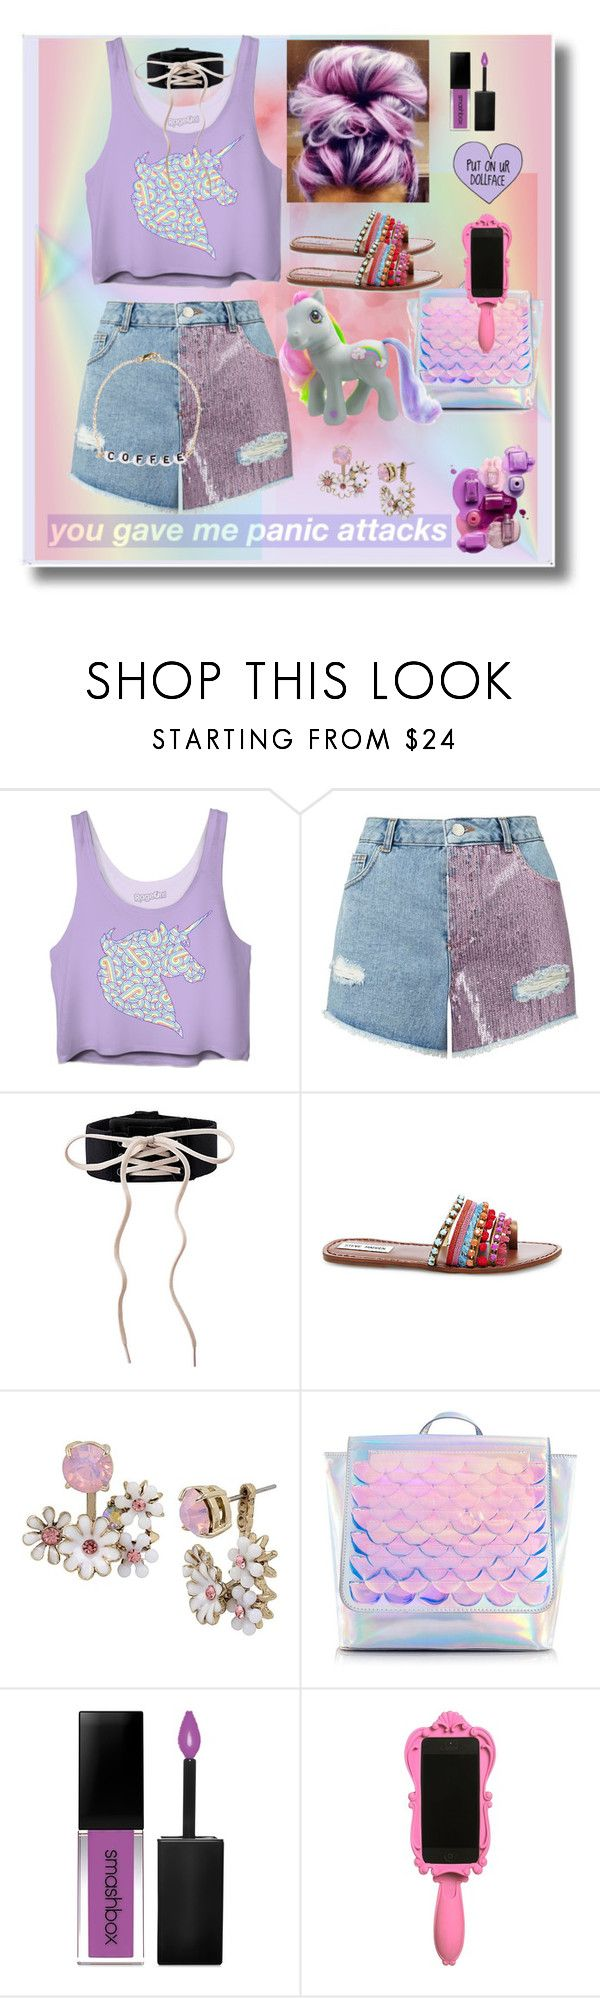 """""""🦄🦄"""" by lulalalala ❤ liked on Polyvore featuring Miss Selfridge, Essie, Steve Madden, Betsey Johnson, Smashbox, Moschino, Ryan Porter and My Little Pony"""